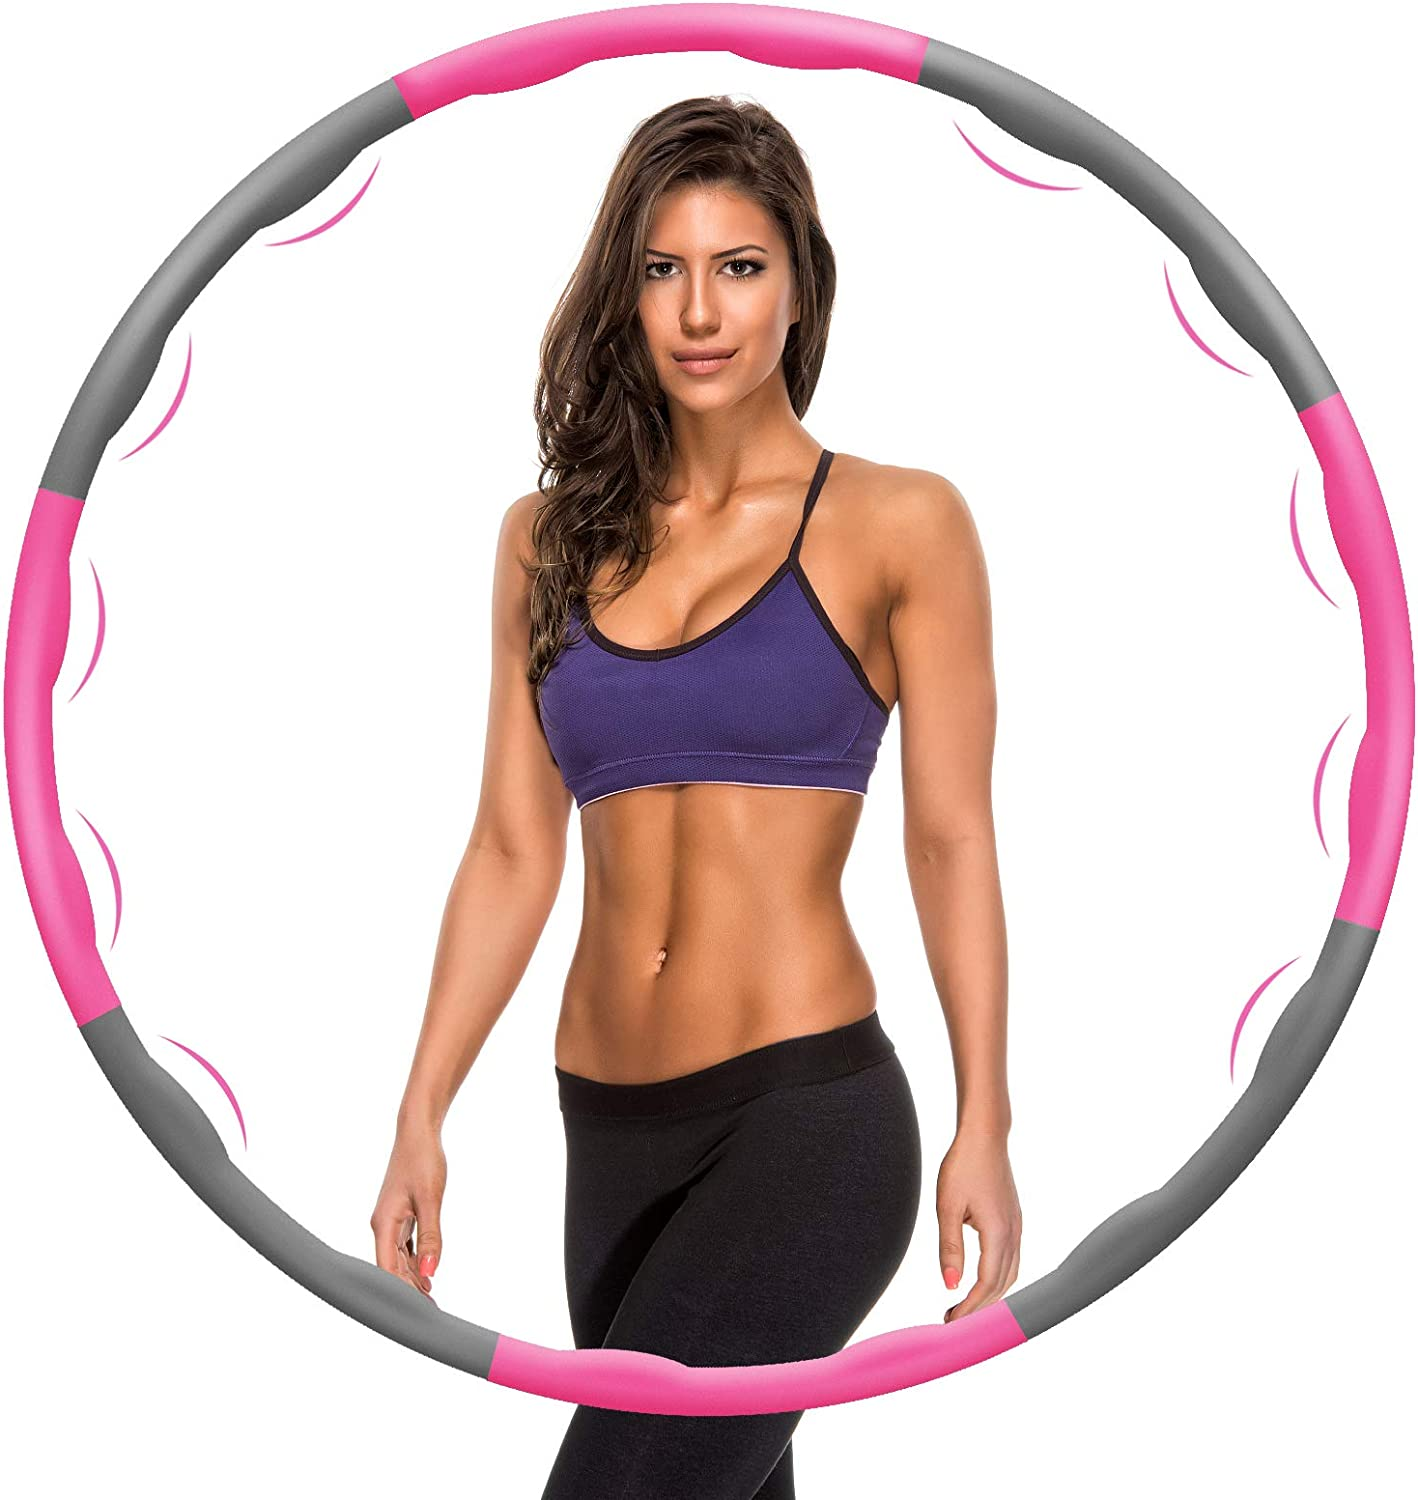 Ansontop Adult Hula Hoop Weighted Fitness Exercise Folding Fitness Hula Hoops Folding Fitness Wave 1kg Adjustable Width 75-95cm for Fitness Exercise Gym,Weight Loss//Abdominal Shaping//Home(Pink+Gray)